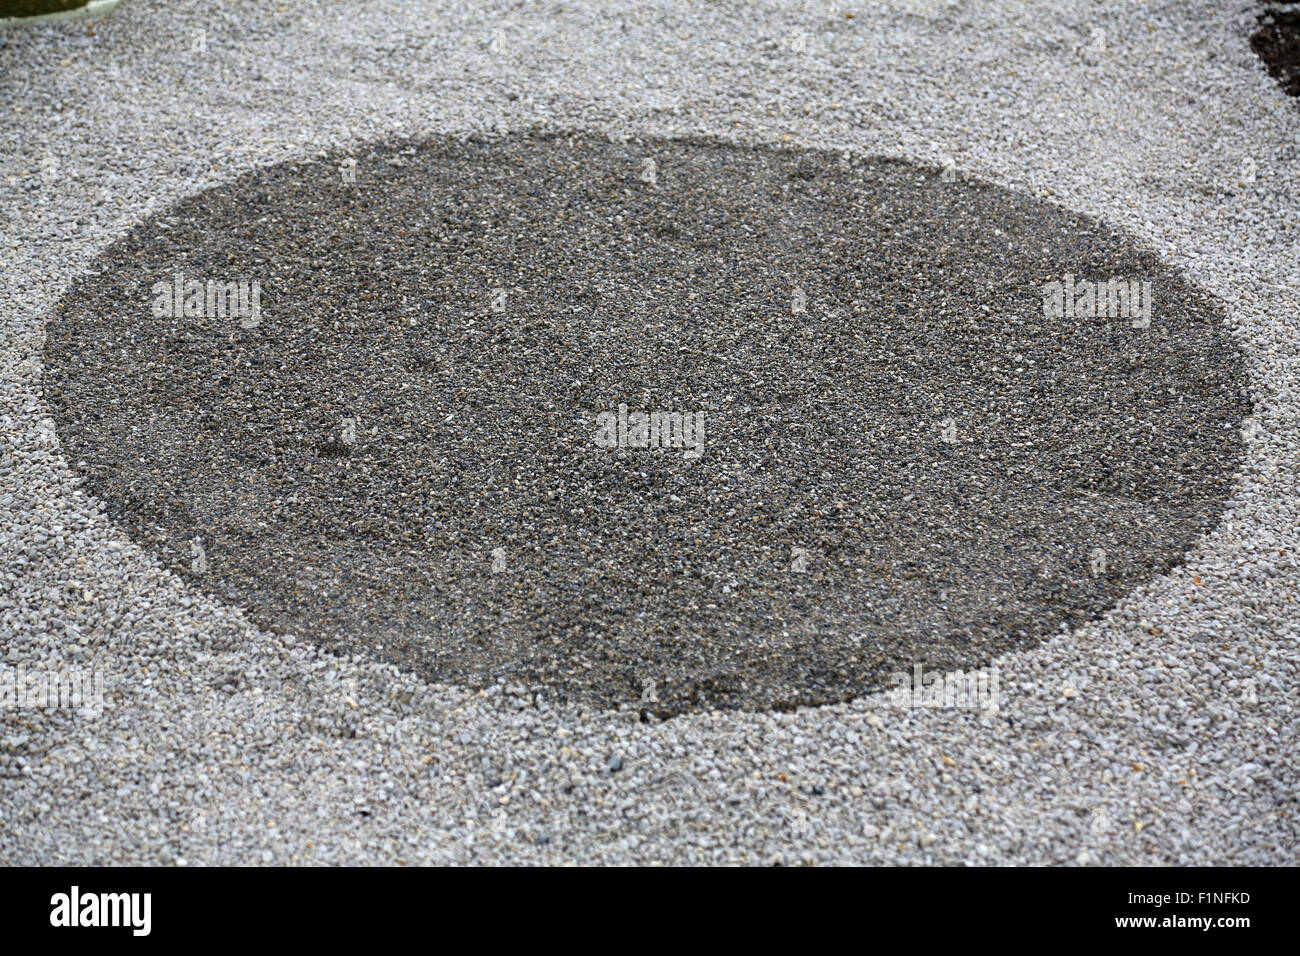 Garden design, with hard landscaping, using shaping, paving, rocks and pebbles - Stock Image